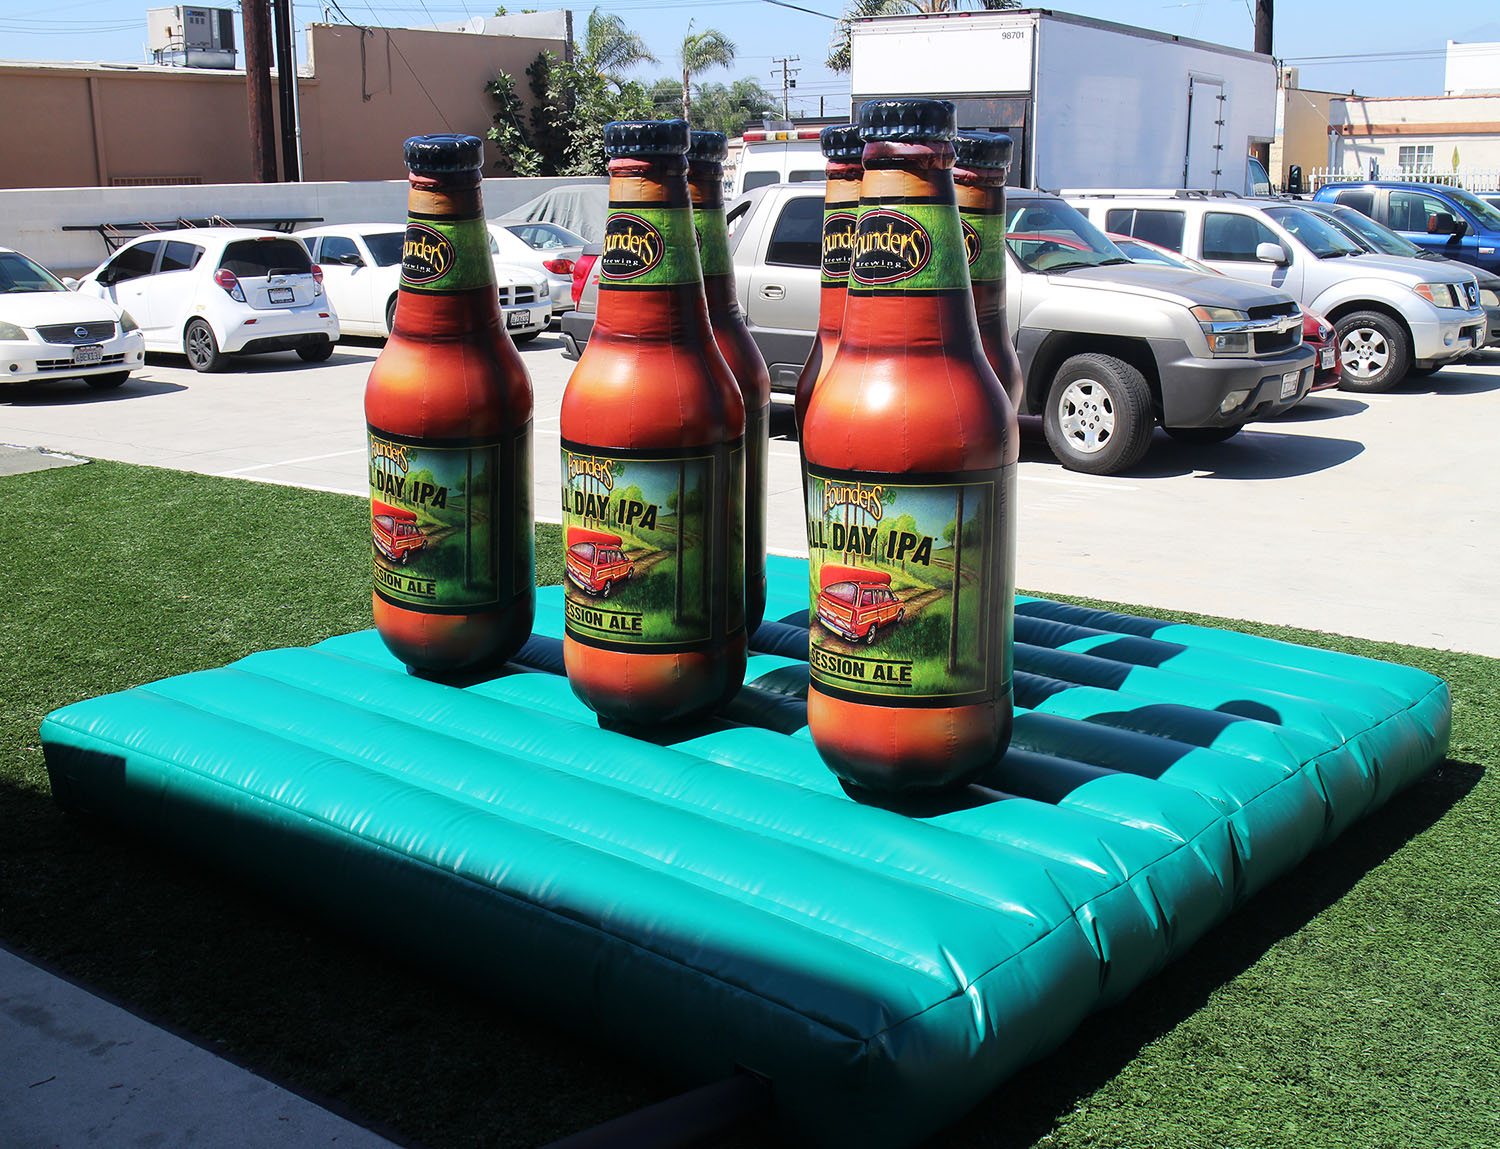 founders-beer-bottles-ring-toss-game-interactive